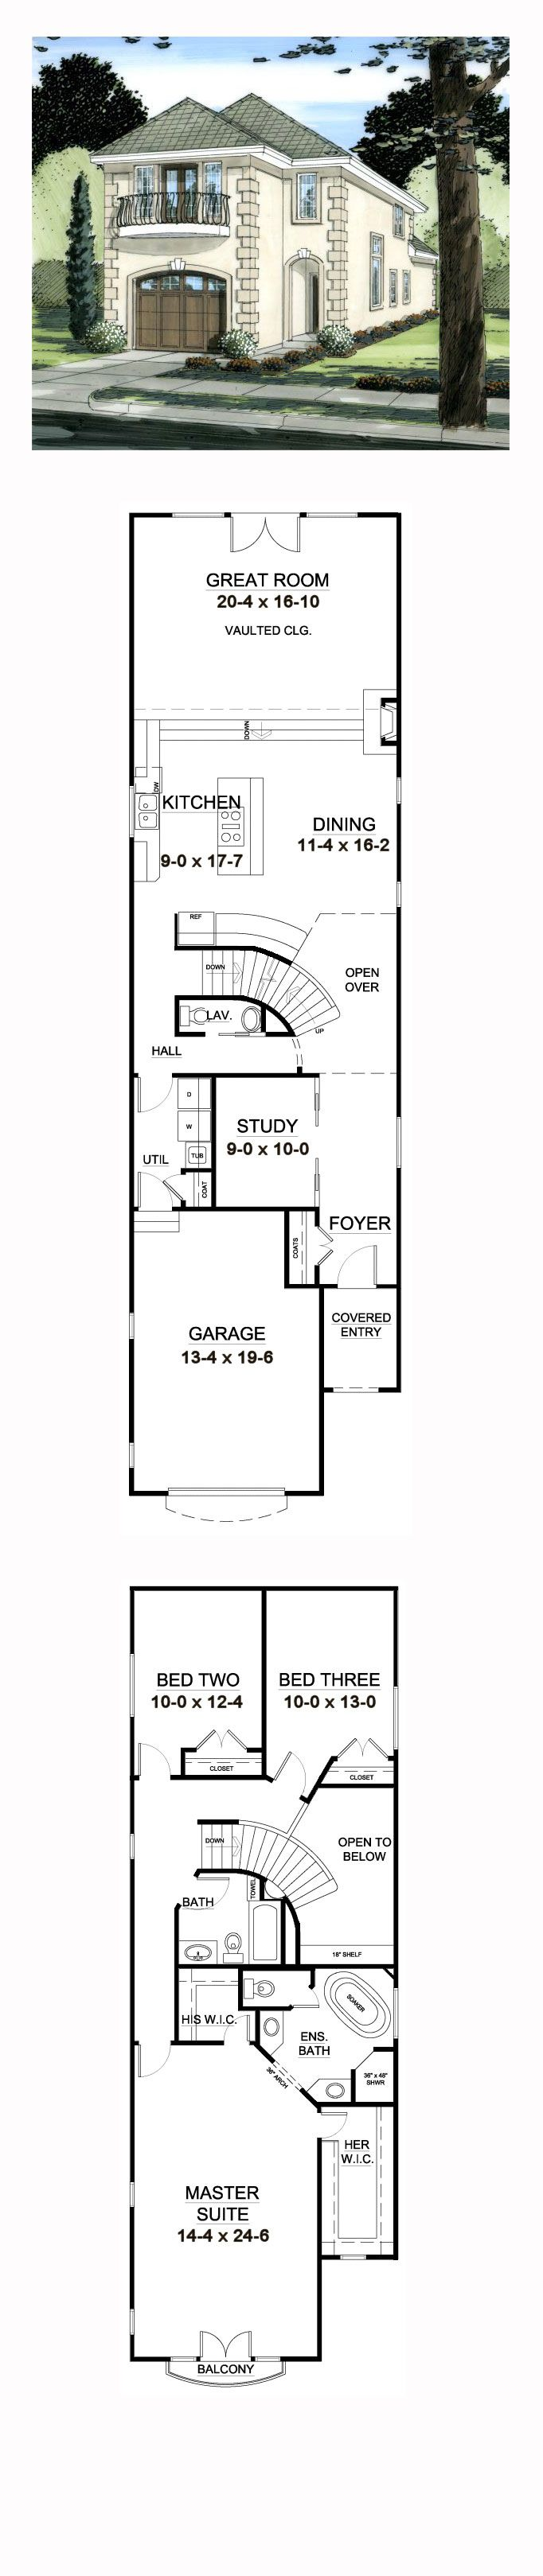 Best 25 narrow house plans ideas on pinterest narrow lot house plans sims 4 houses layout Narrow lot house plans